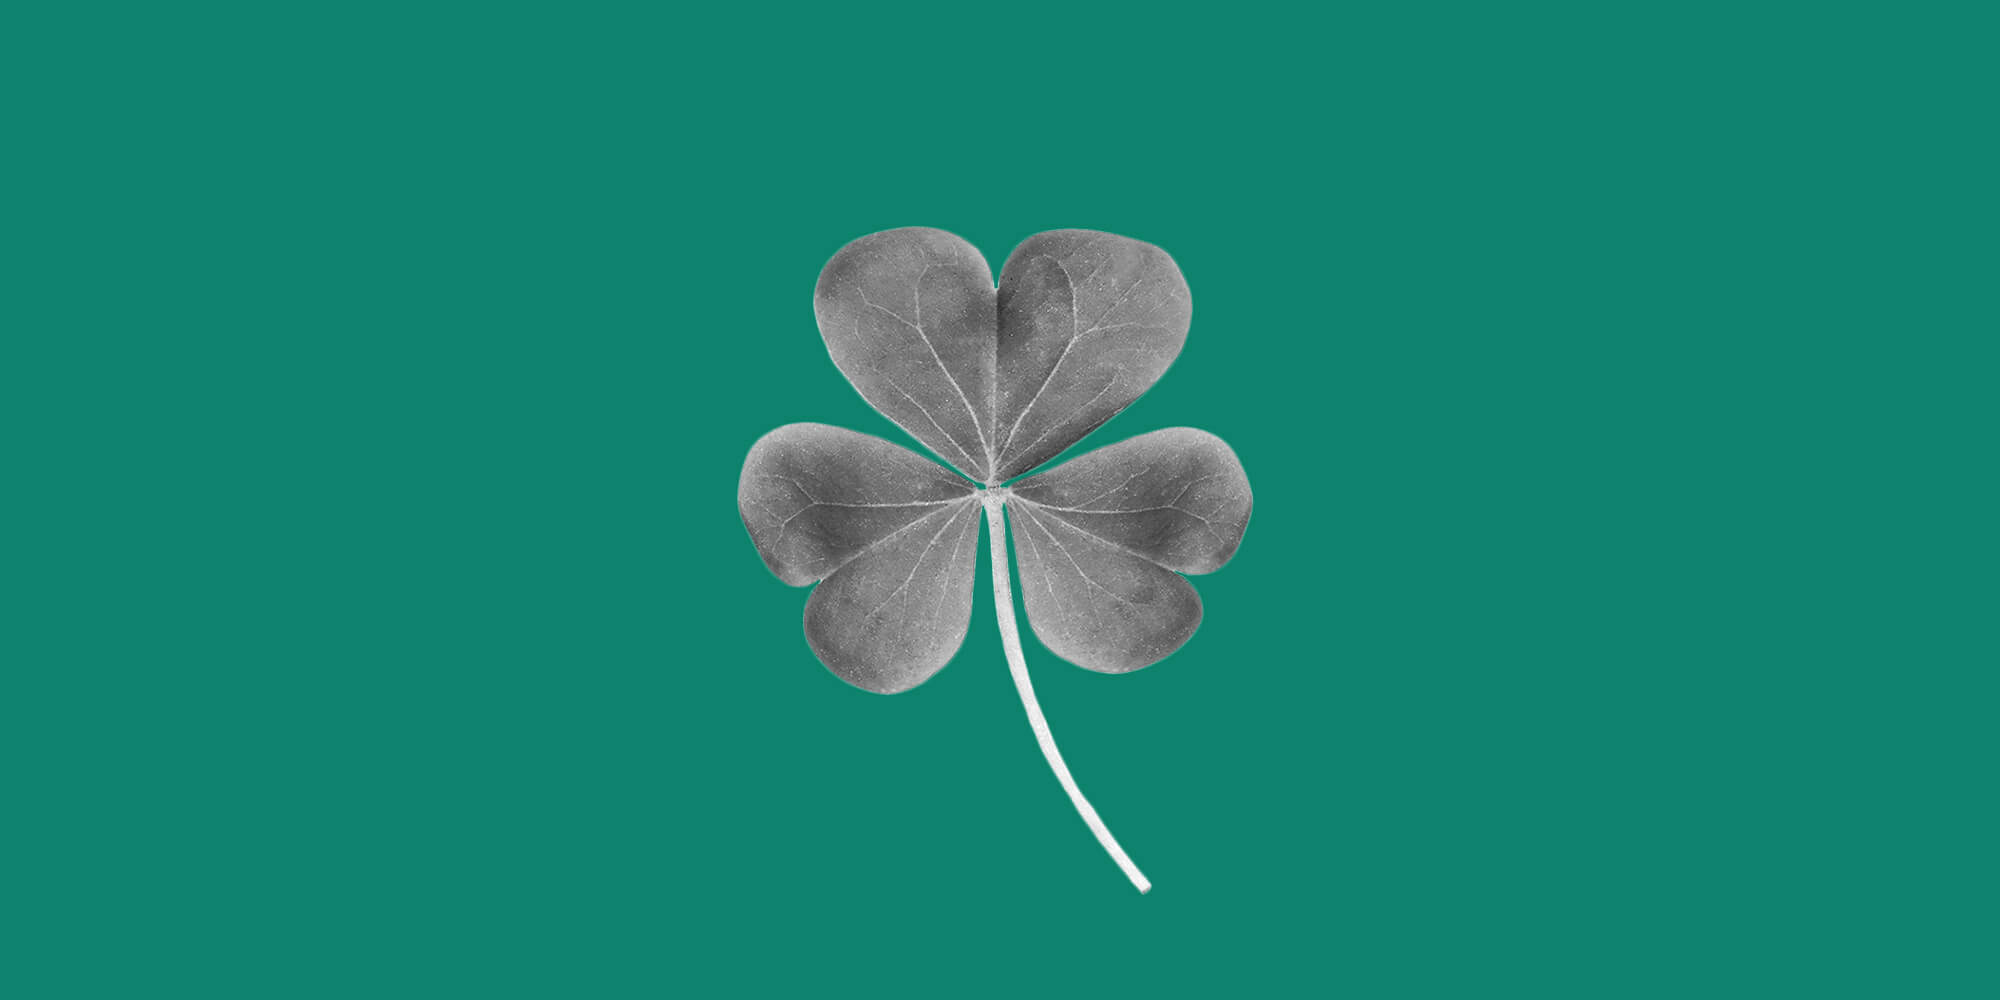 Shamrock on a green background. 7 reasons and alcohol-free St. Patrick's Day is lucky